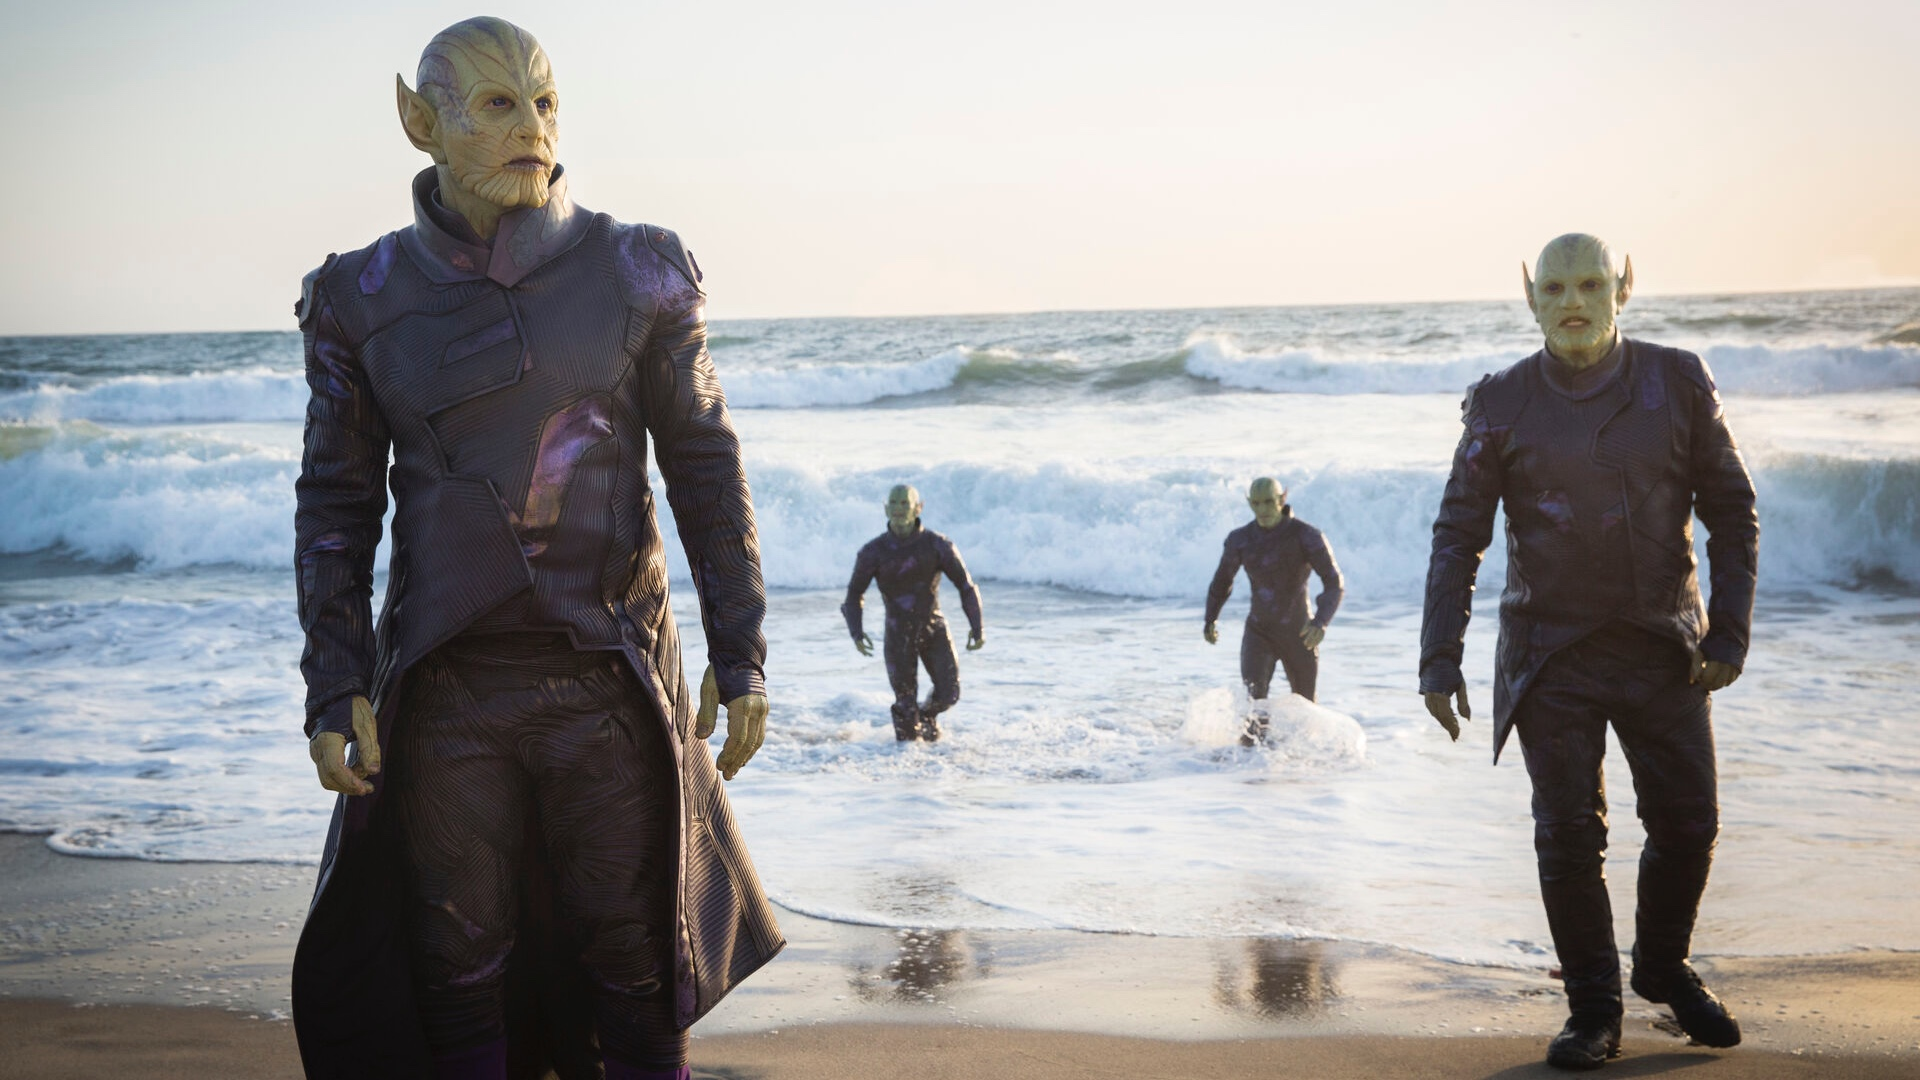 marvel-studios-president-kevin-feige-teases-the-future-of-the-kree-and-skrull-war-in-the-mcu-social.jpg